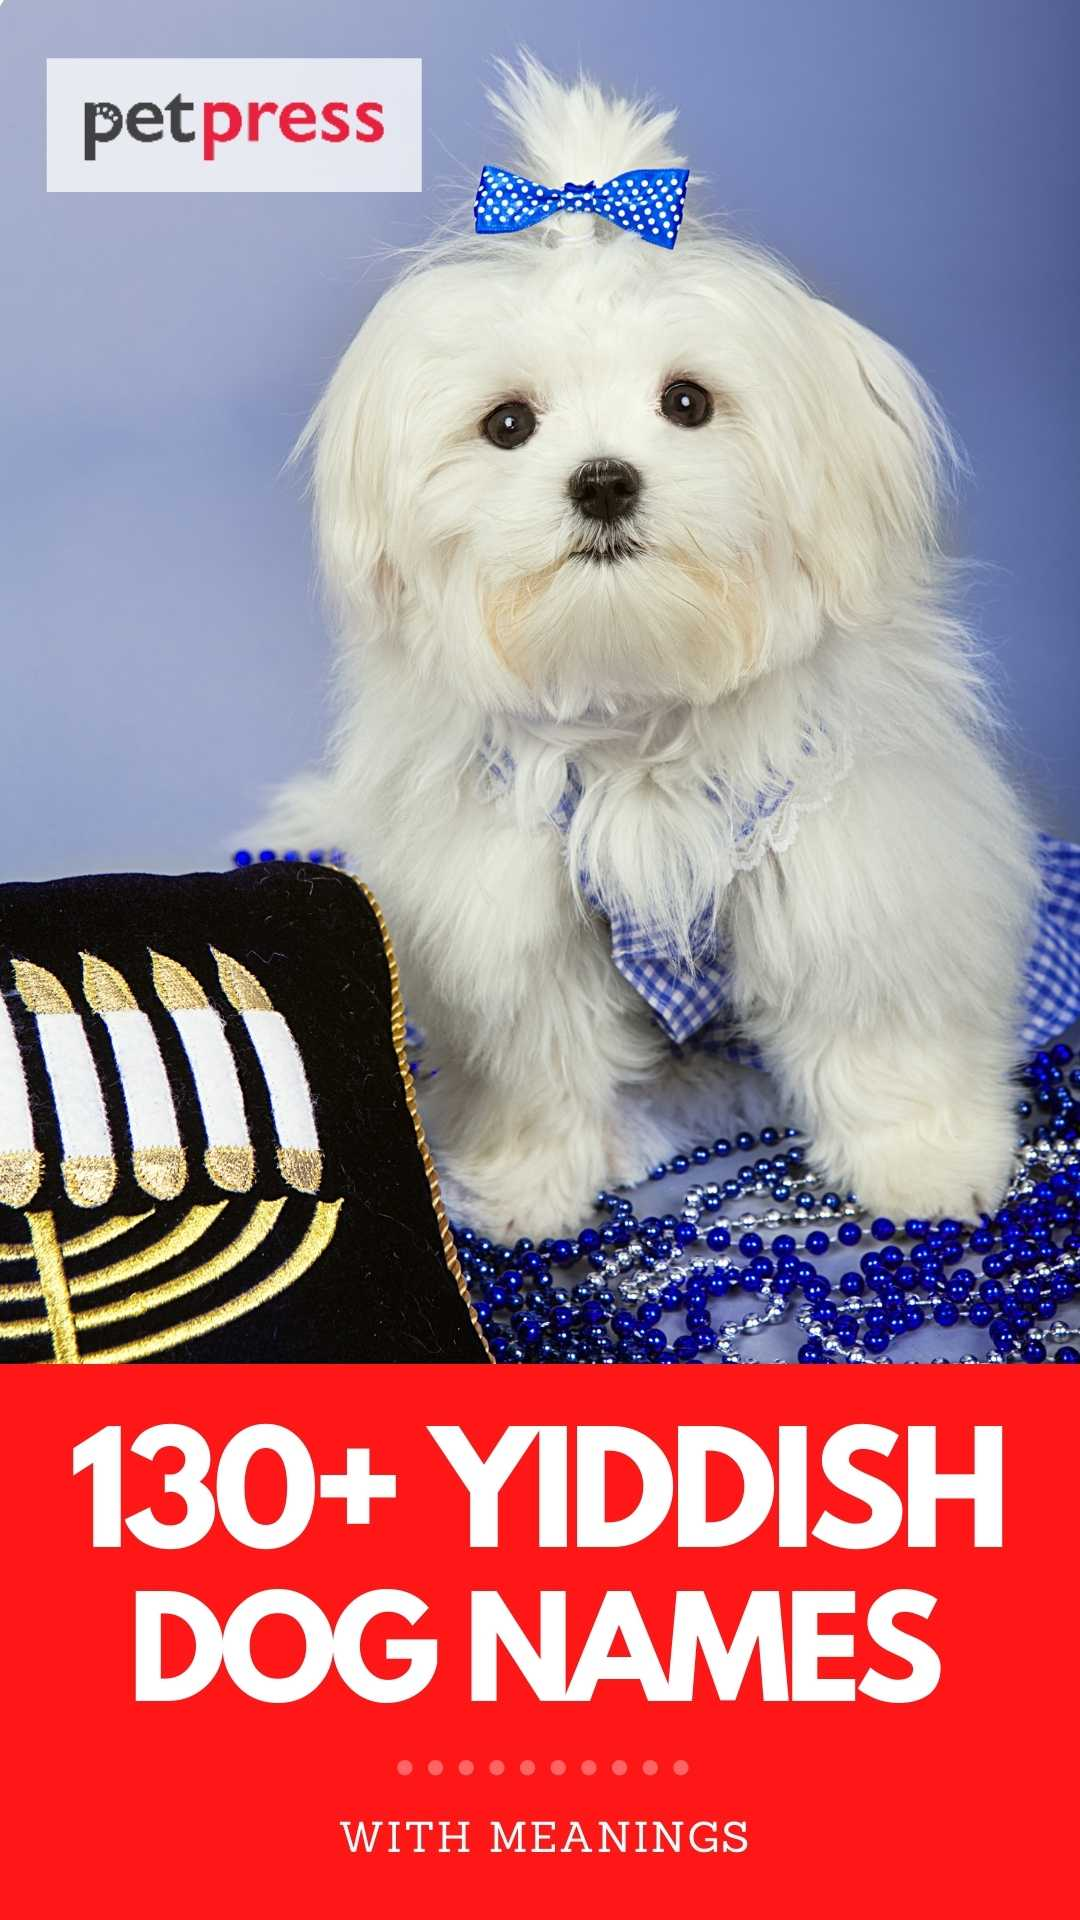 yiddish dog names with meanings for naming a pup